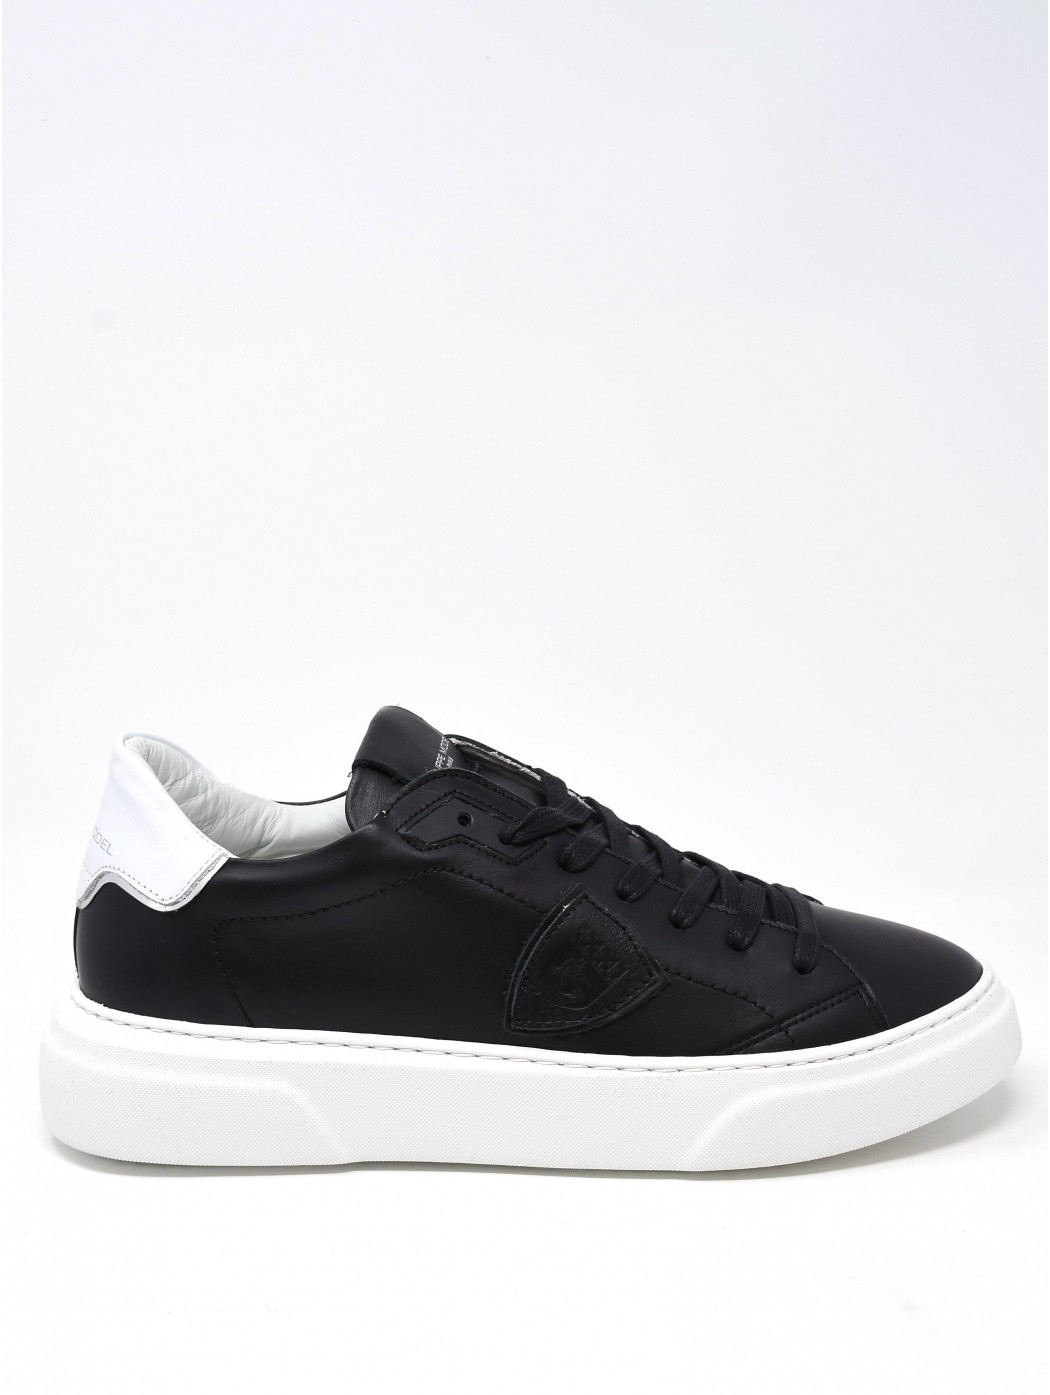 PHILIPPE MODEL BYLU NOIRBLANC SNEAKERS